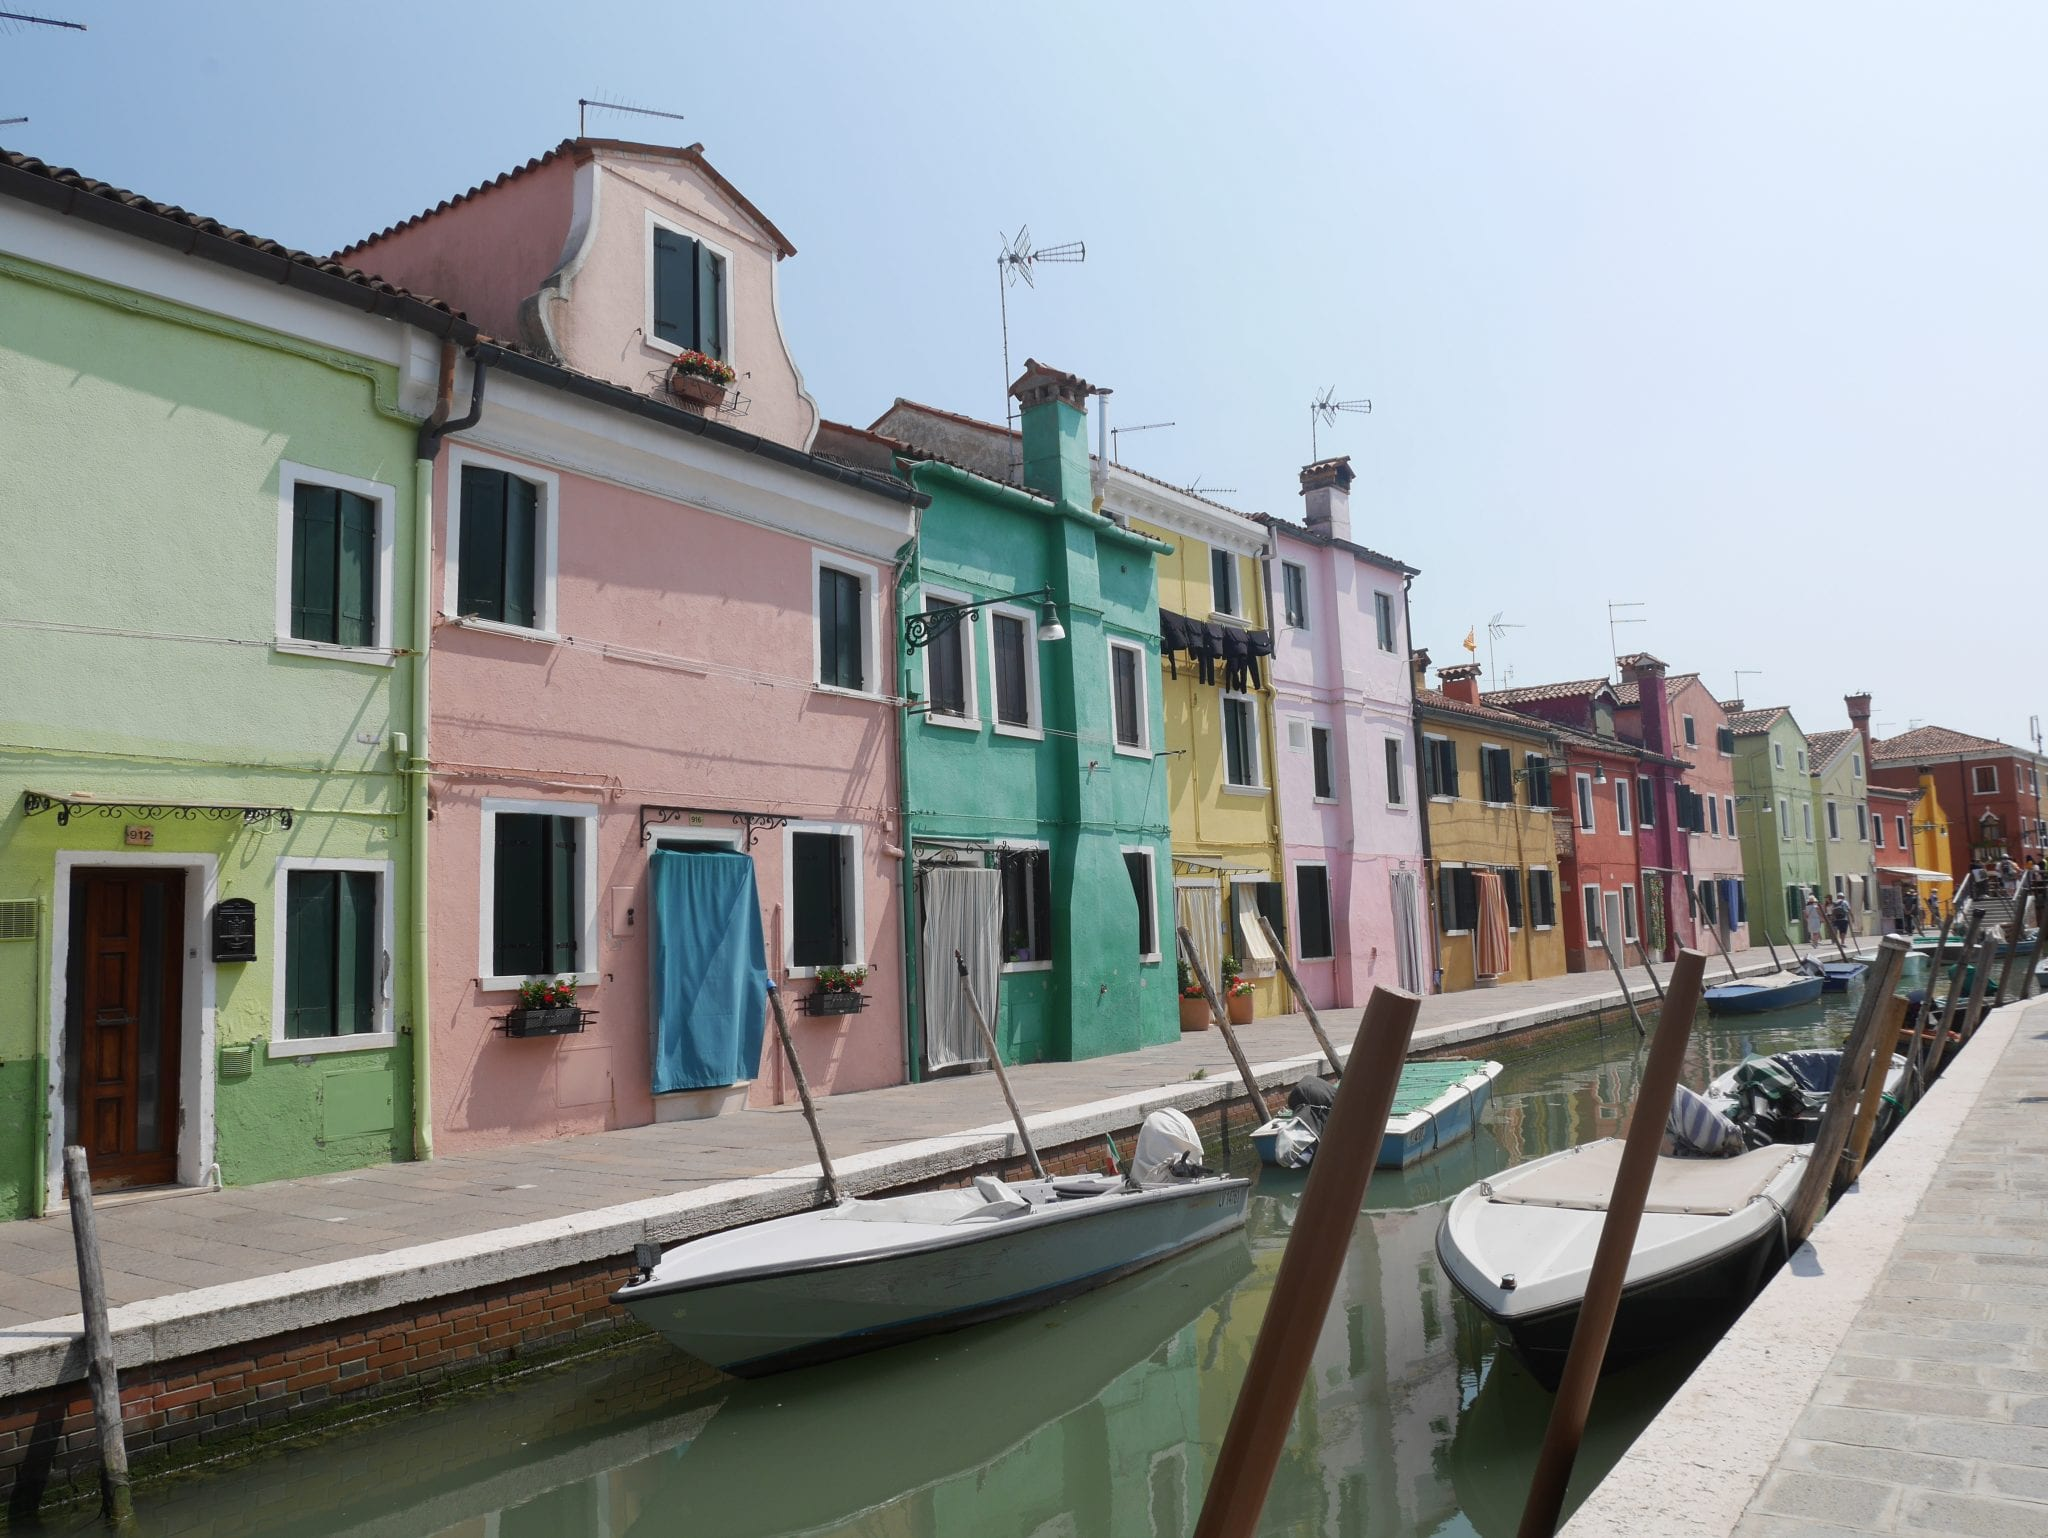 Canale - Burano - Le Plume